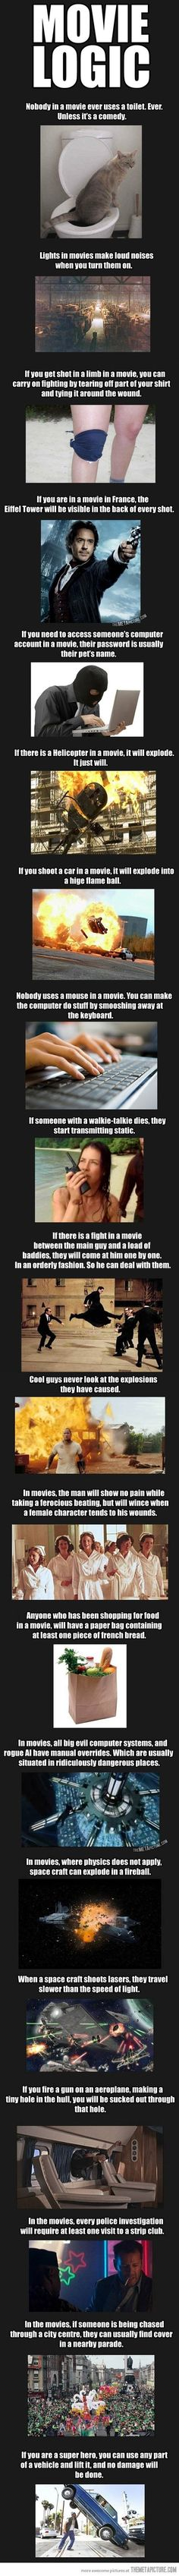 Movie logic…